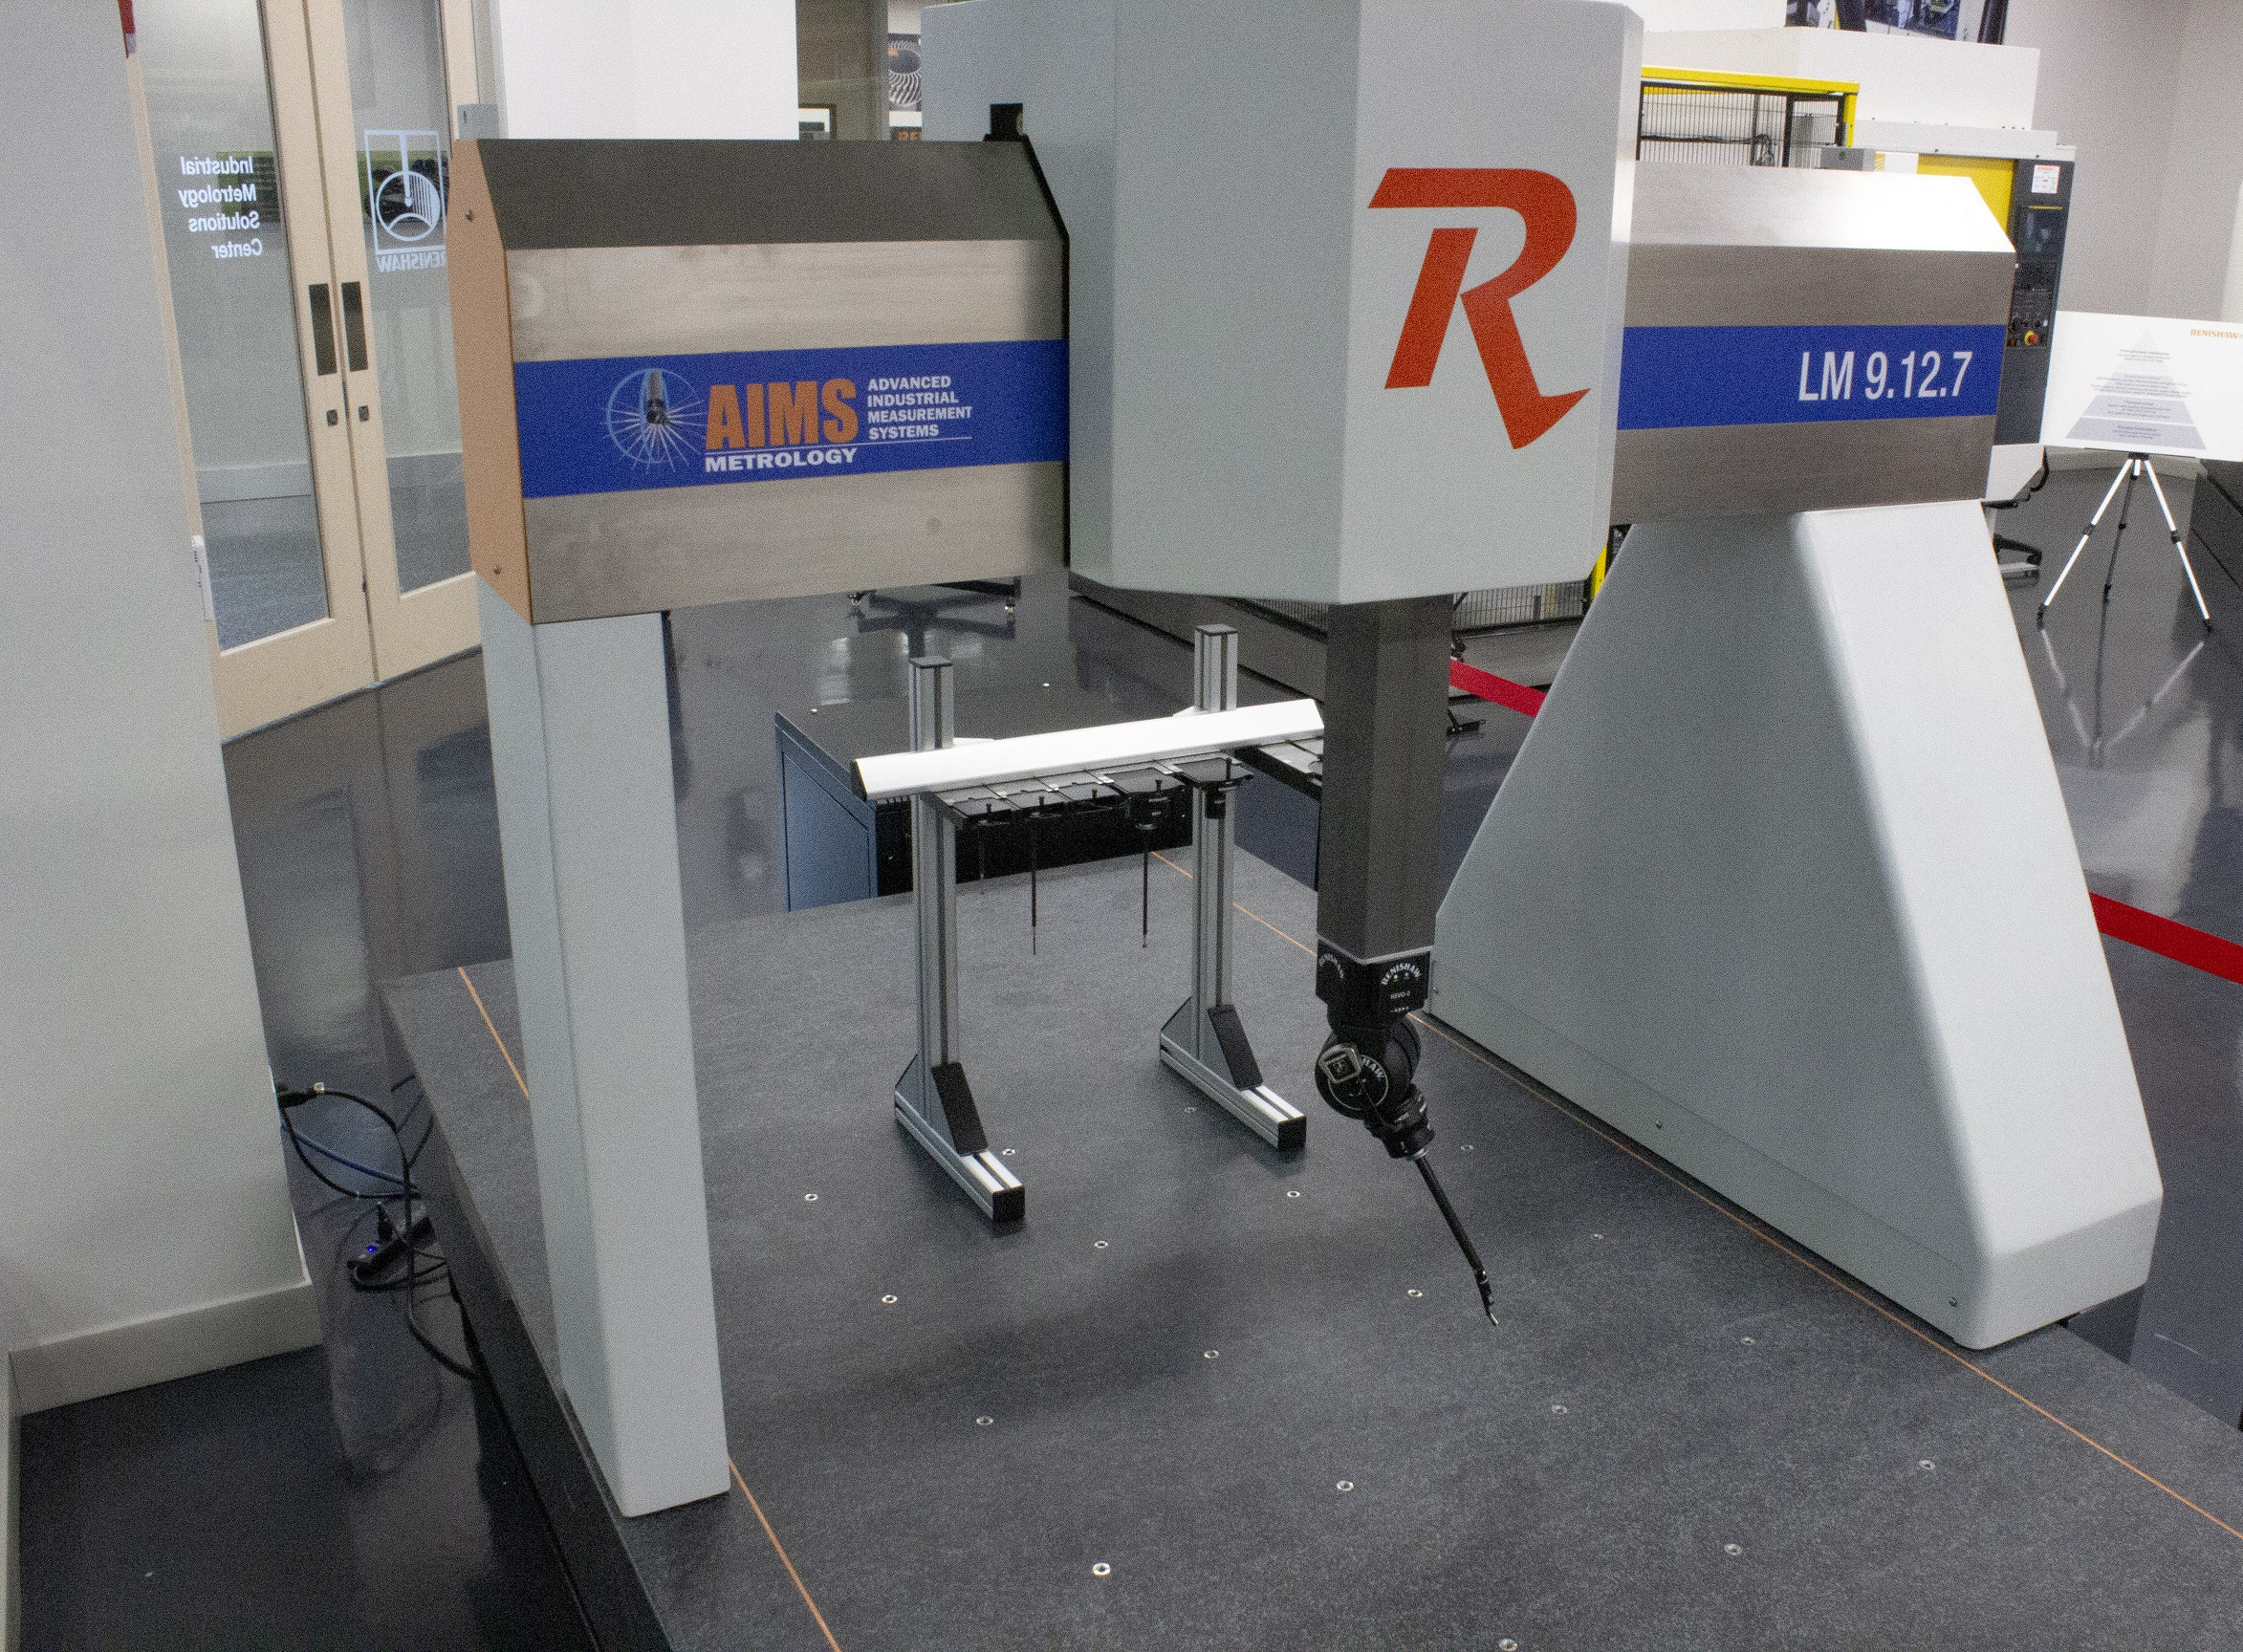 AIMS LM CMM With 5-Axis REVO 2 and New SFP2 Probe 4-26-19